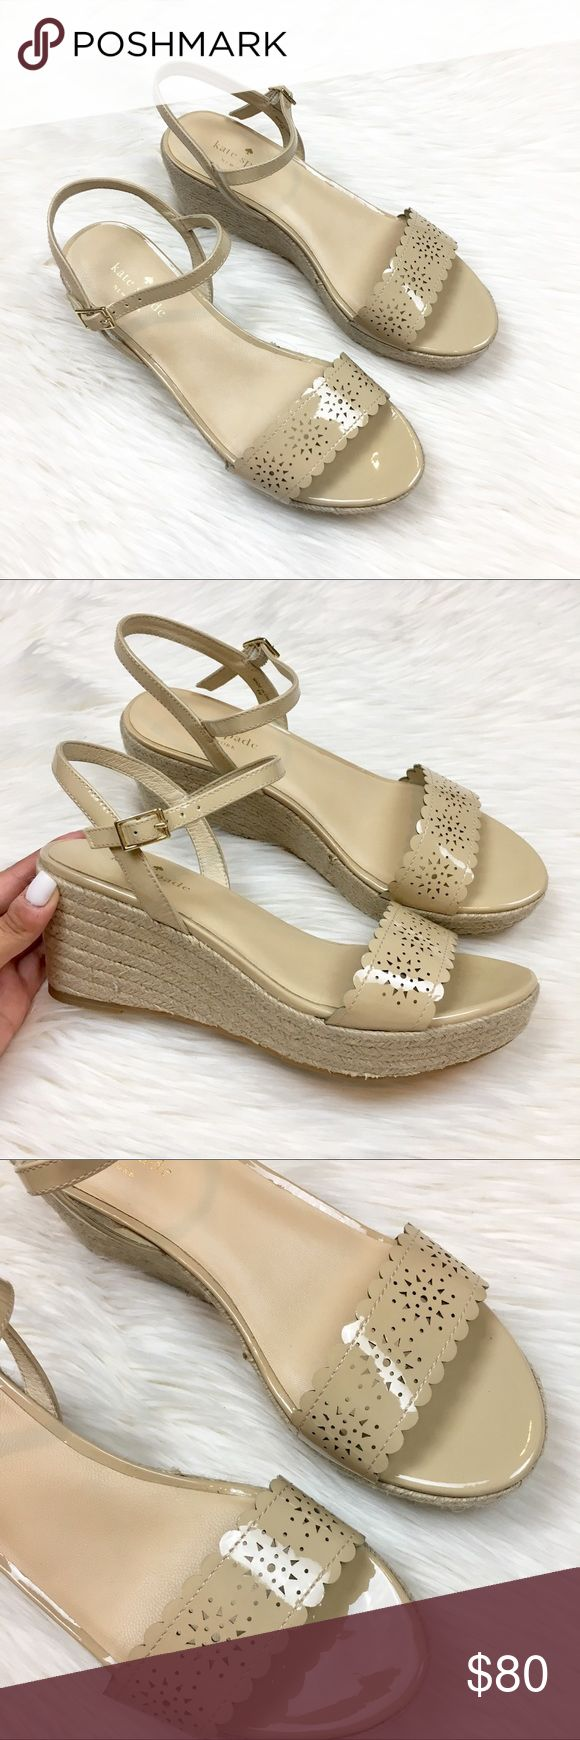 Kate Spade nude espadrilles wedges! ugh these are so cute. the perfect spring and summer shoes to your favorite summer dress. Cute sun cutout design on front and cute espadrille wedge. Brand new! But don't have original box kate spade Shoes Wedges